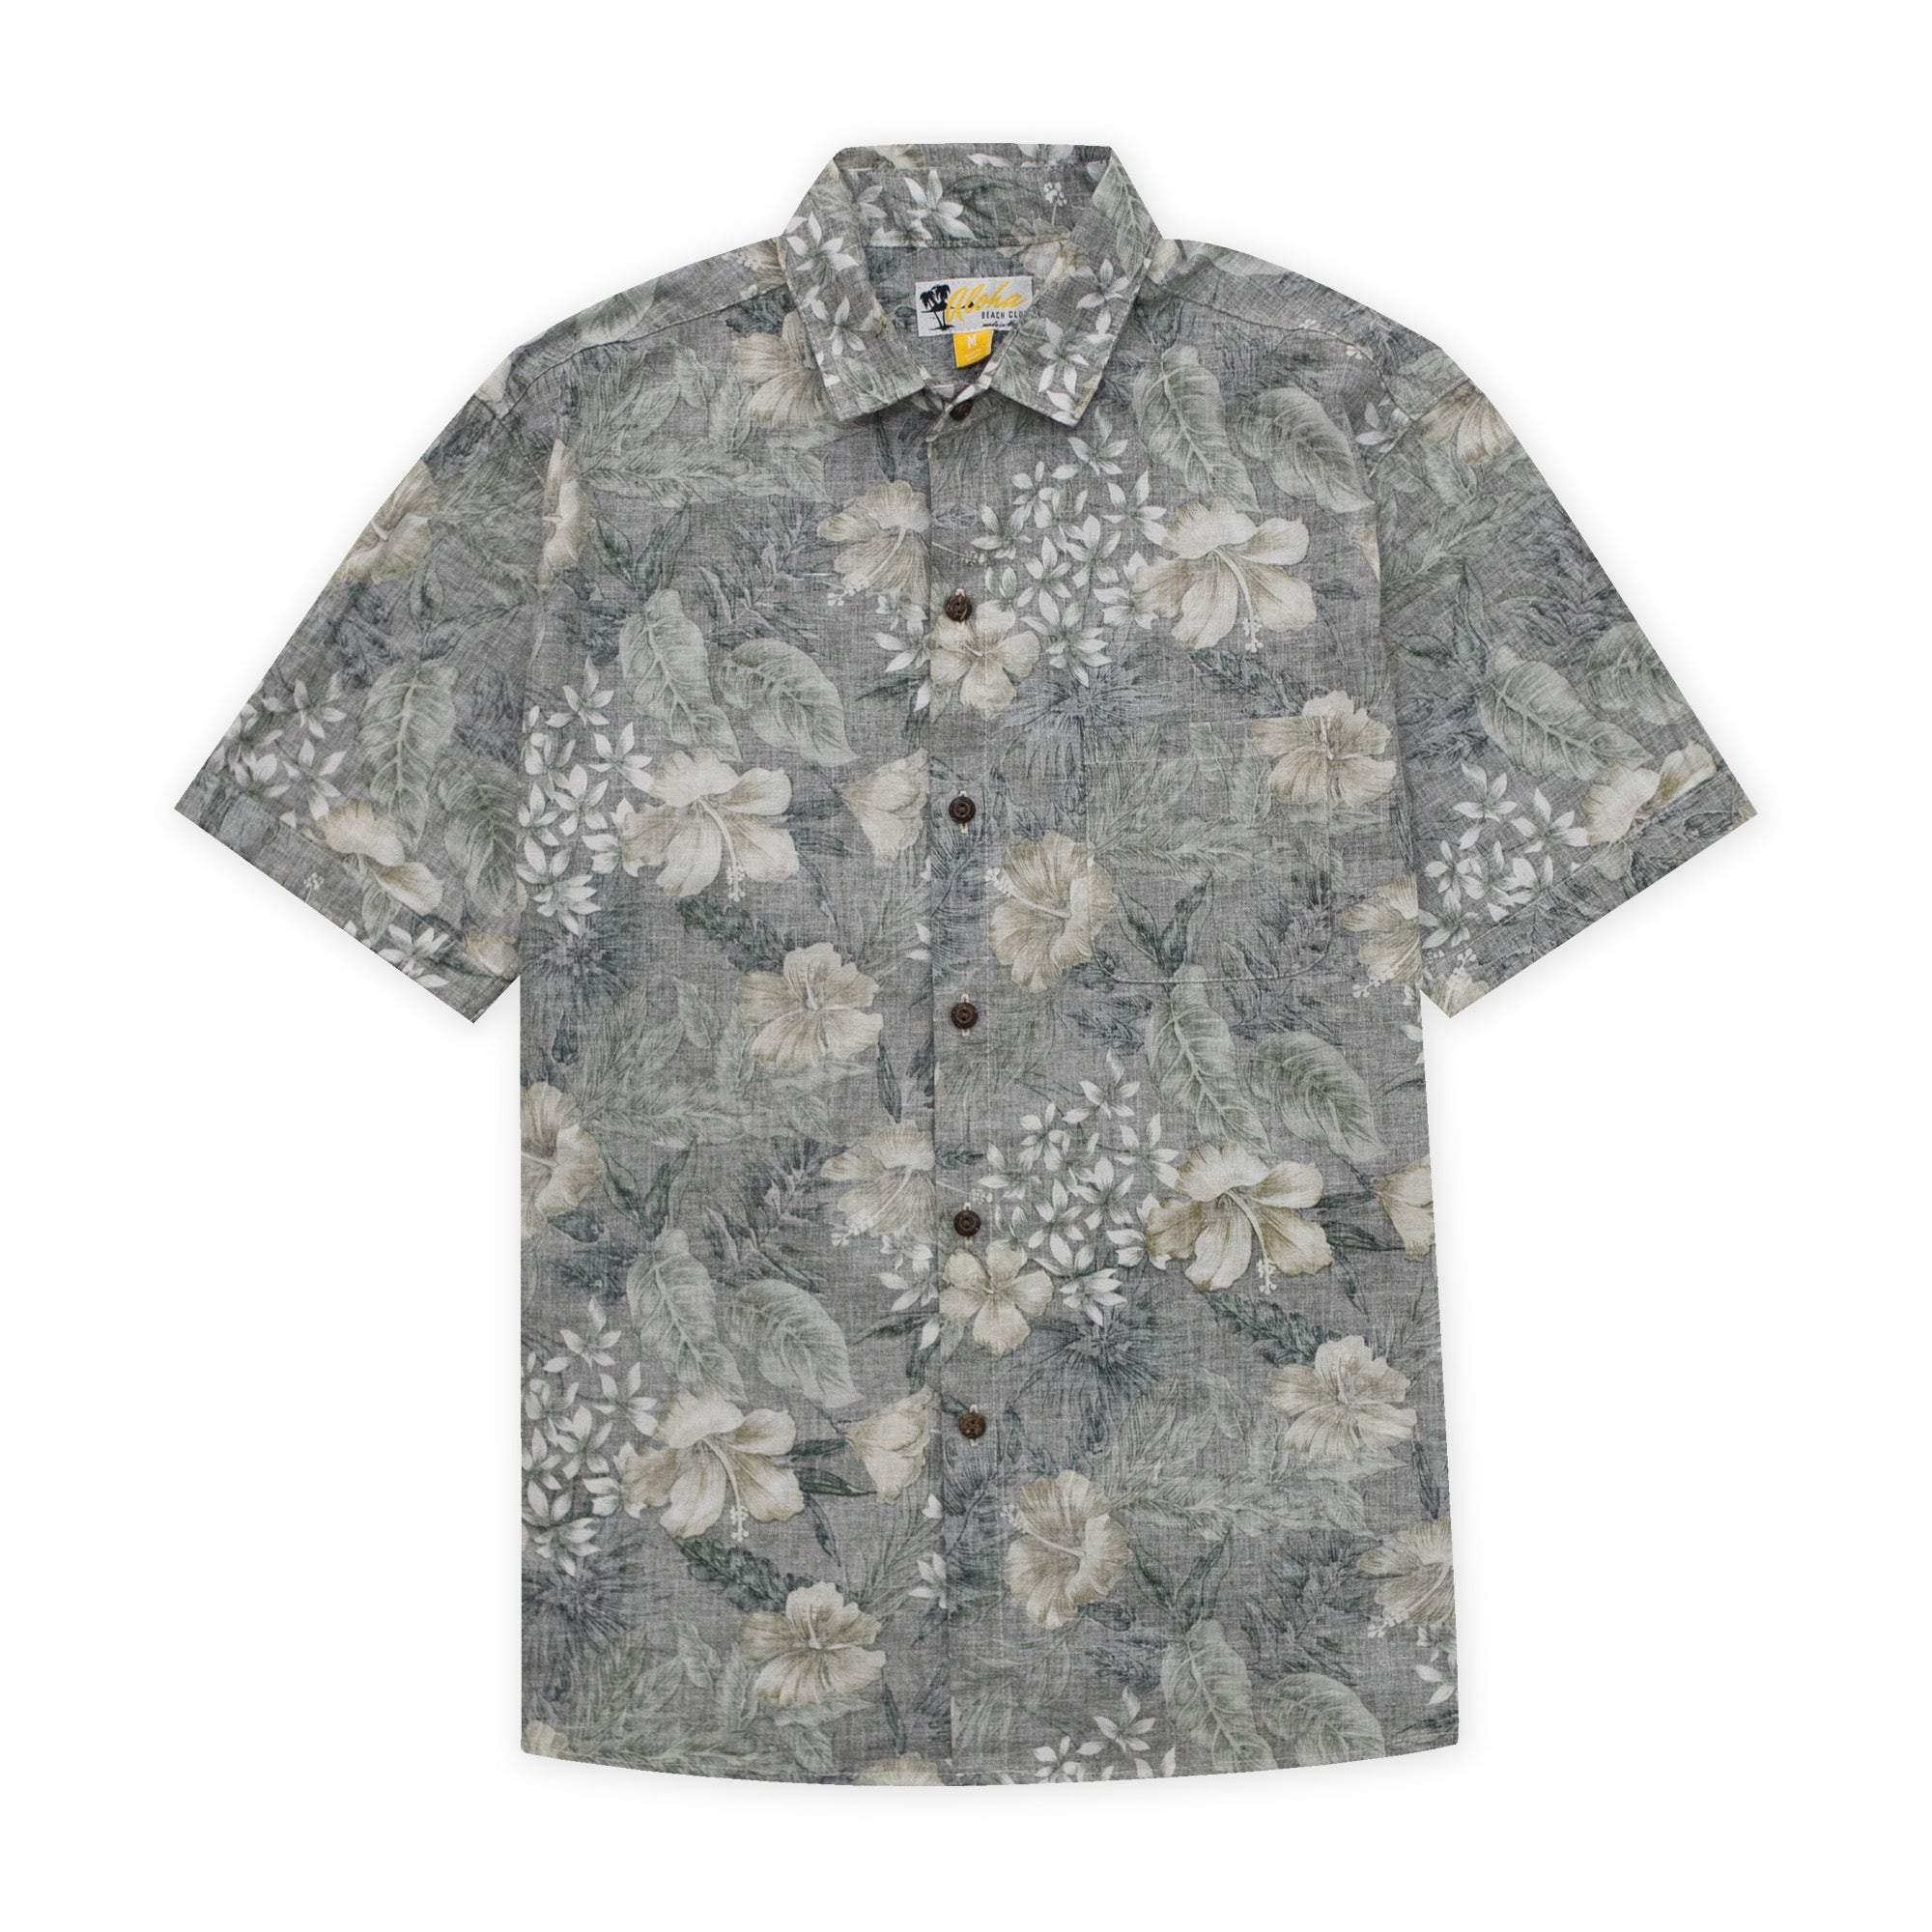 Aloha Beach Club - Nelly Short Sleeve Aloha Shirt Green - Aloha Beach Club